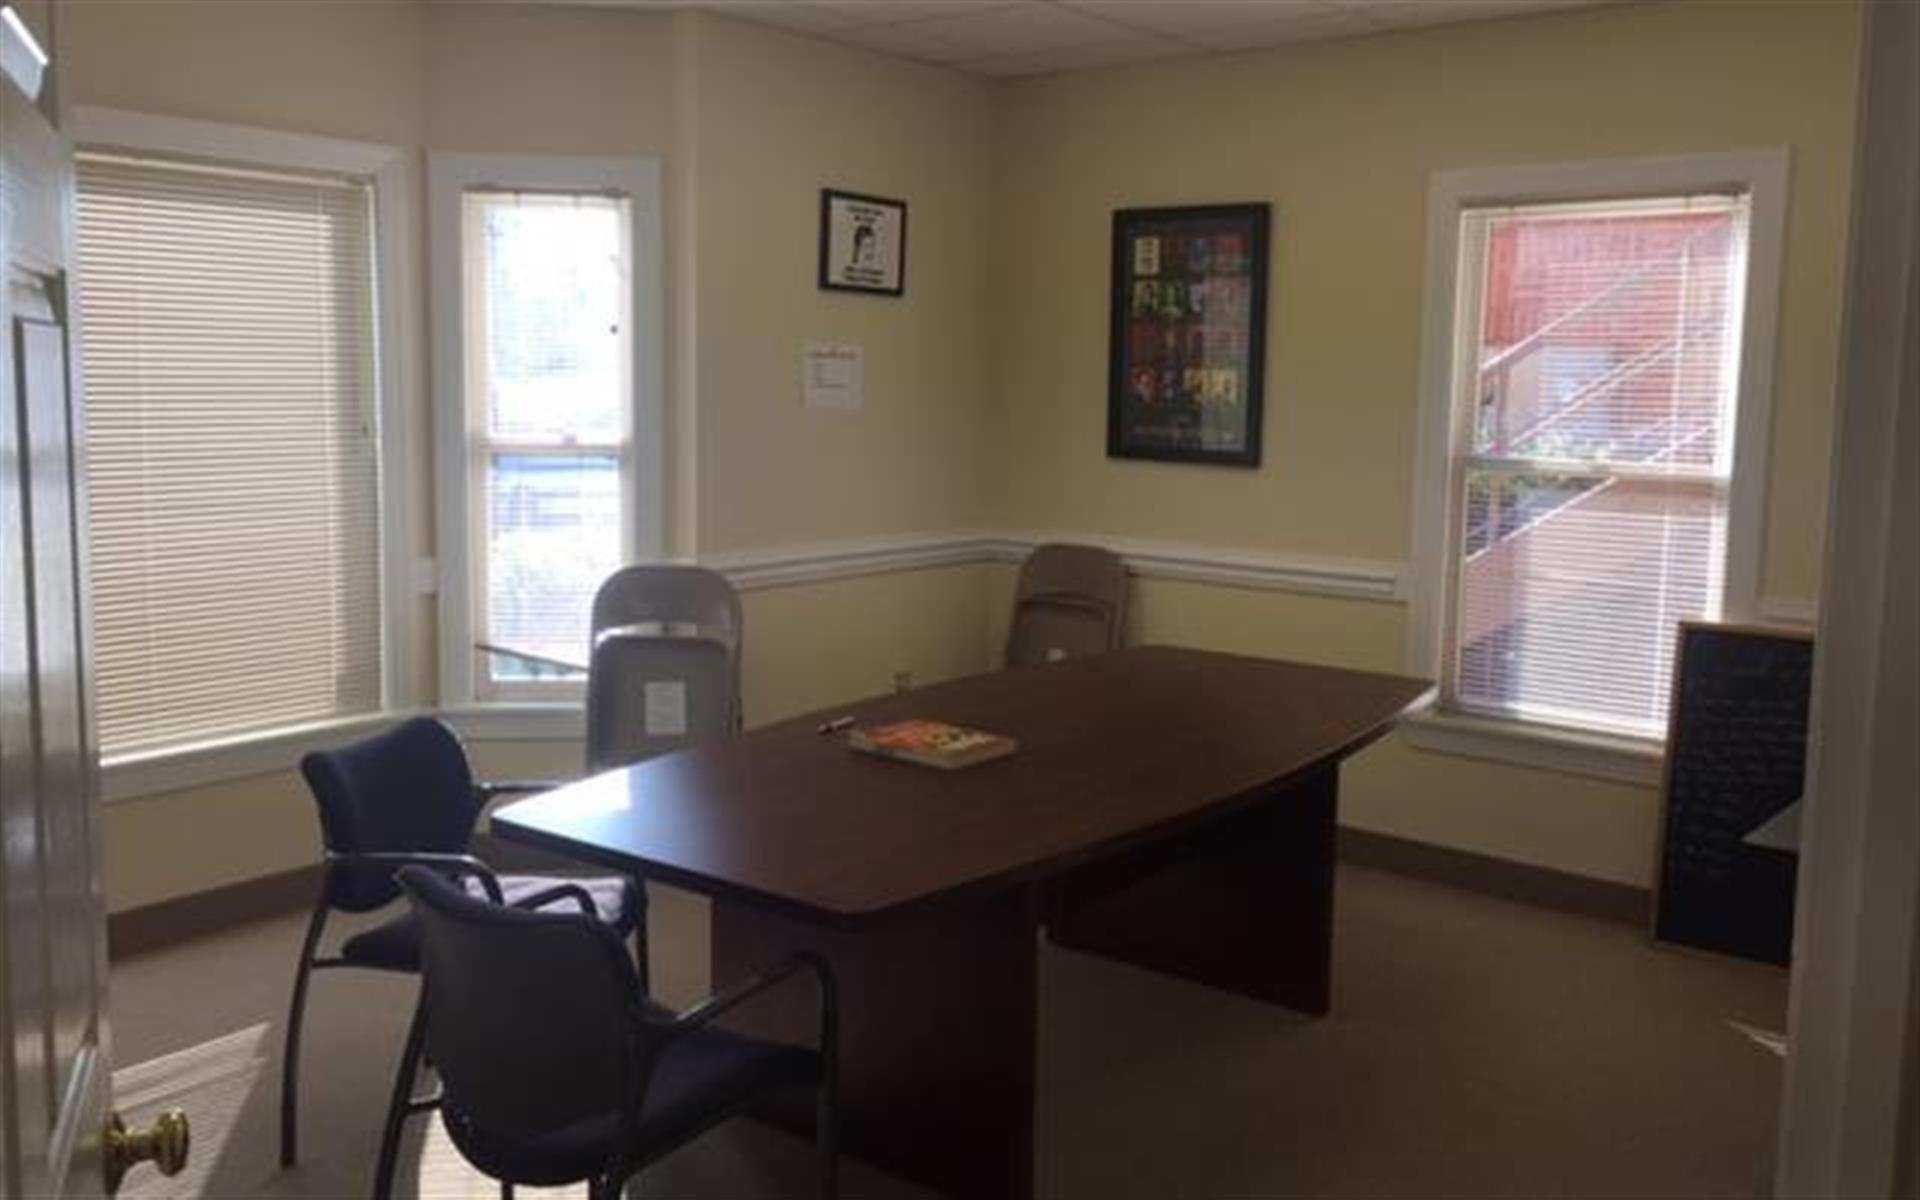 Mindspire Tutoring and Test Prep - Conference Room